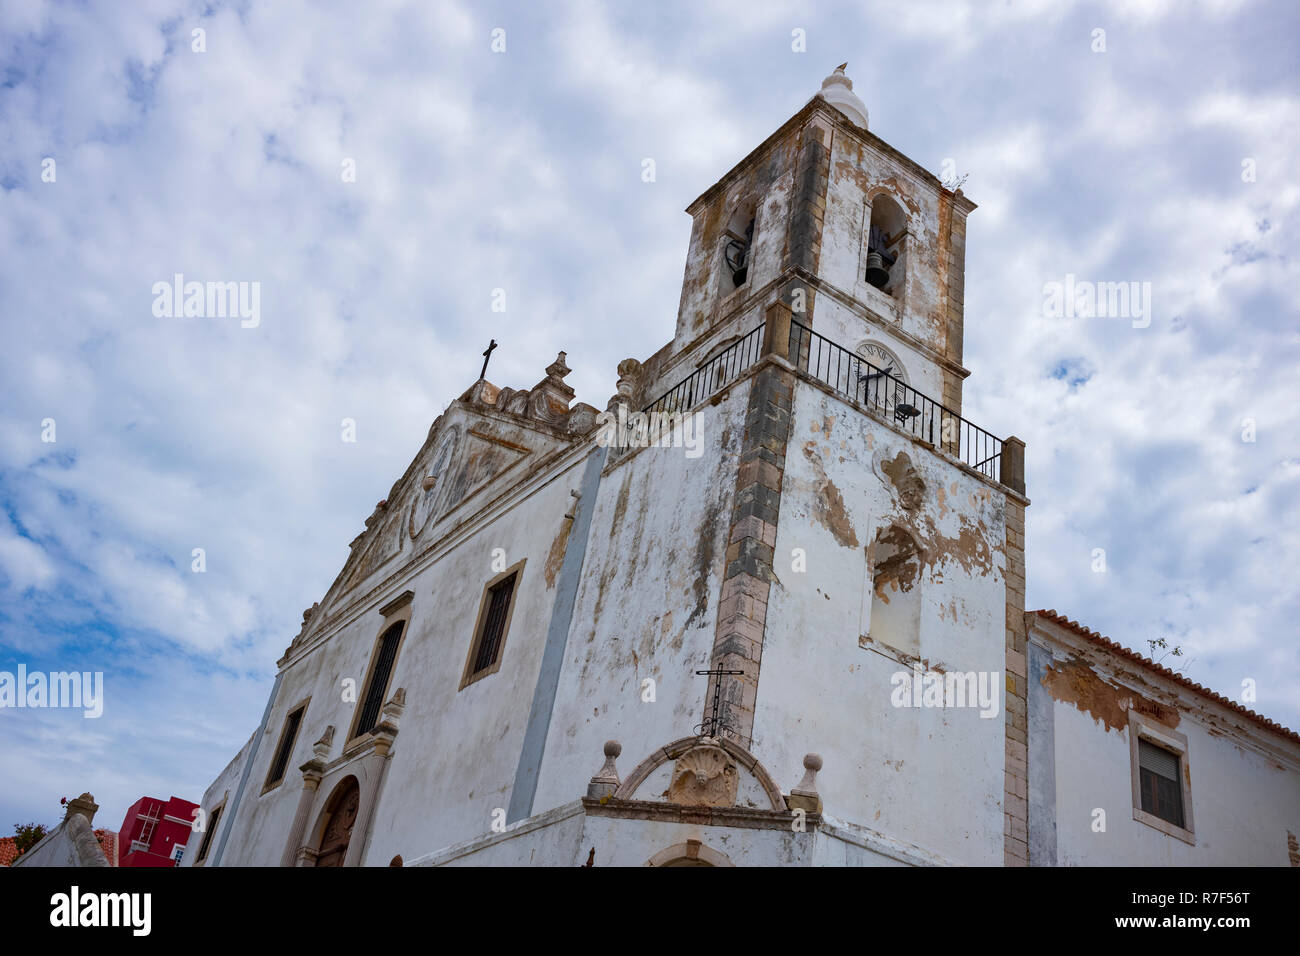 Lagos, a municipality at the mouth of Bensafrim River and along the Atlantic Ocean, in the Barlavento region of the Algarve, in southern Portugal. - Stock Image